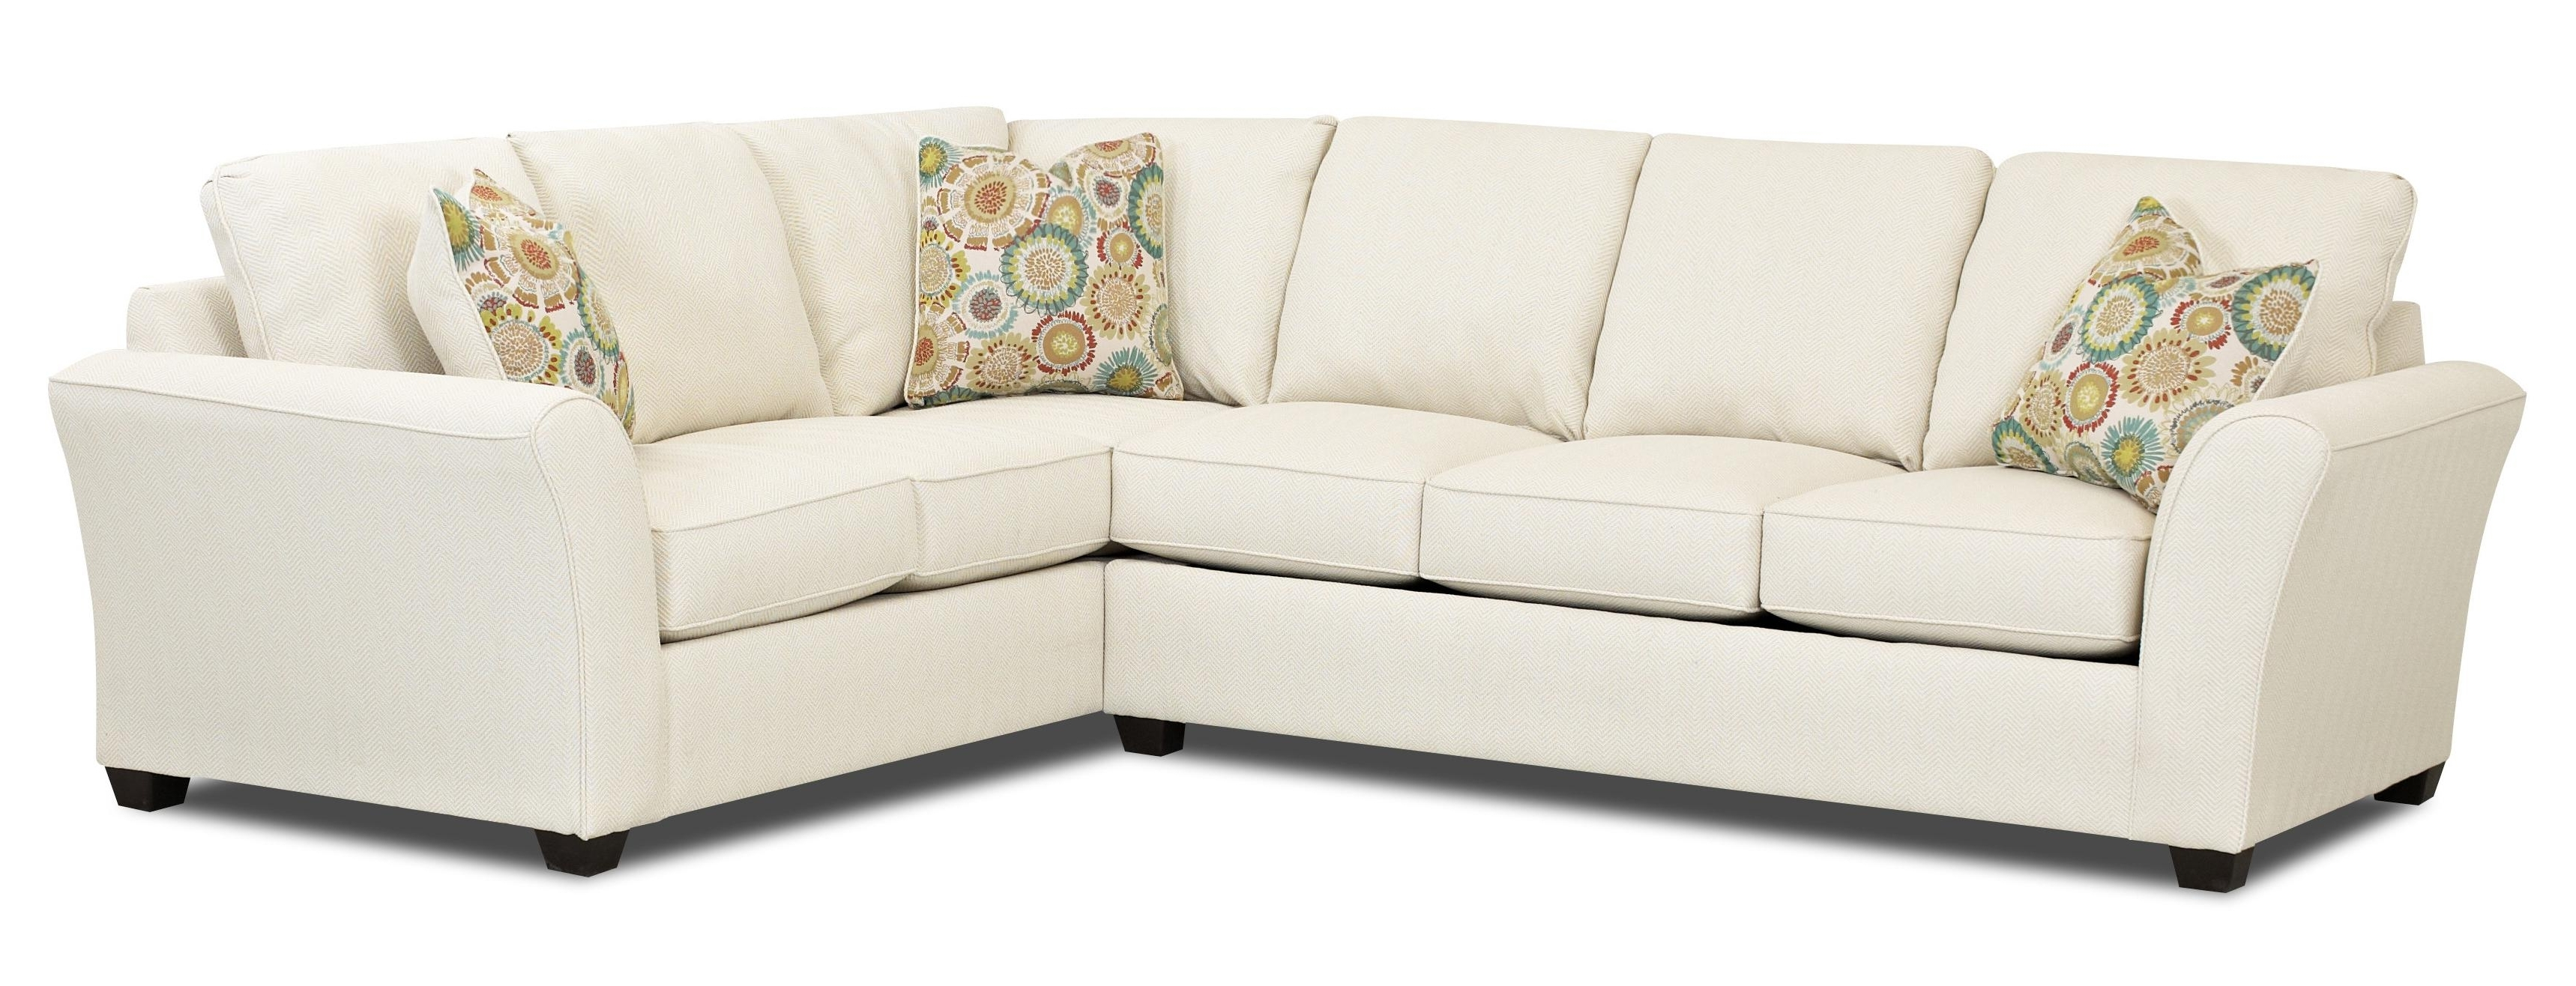 Transitional Sectional Sleeper Sofa With Dreamquest Mattress With Current Sectional Sofas With Queen Size Sleeper (View 12 of 15)